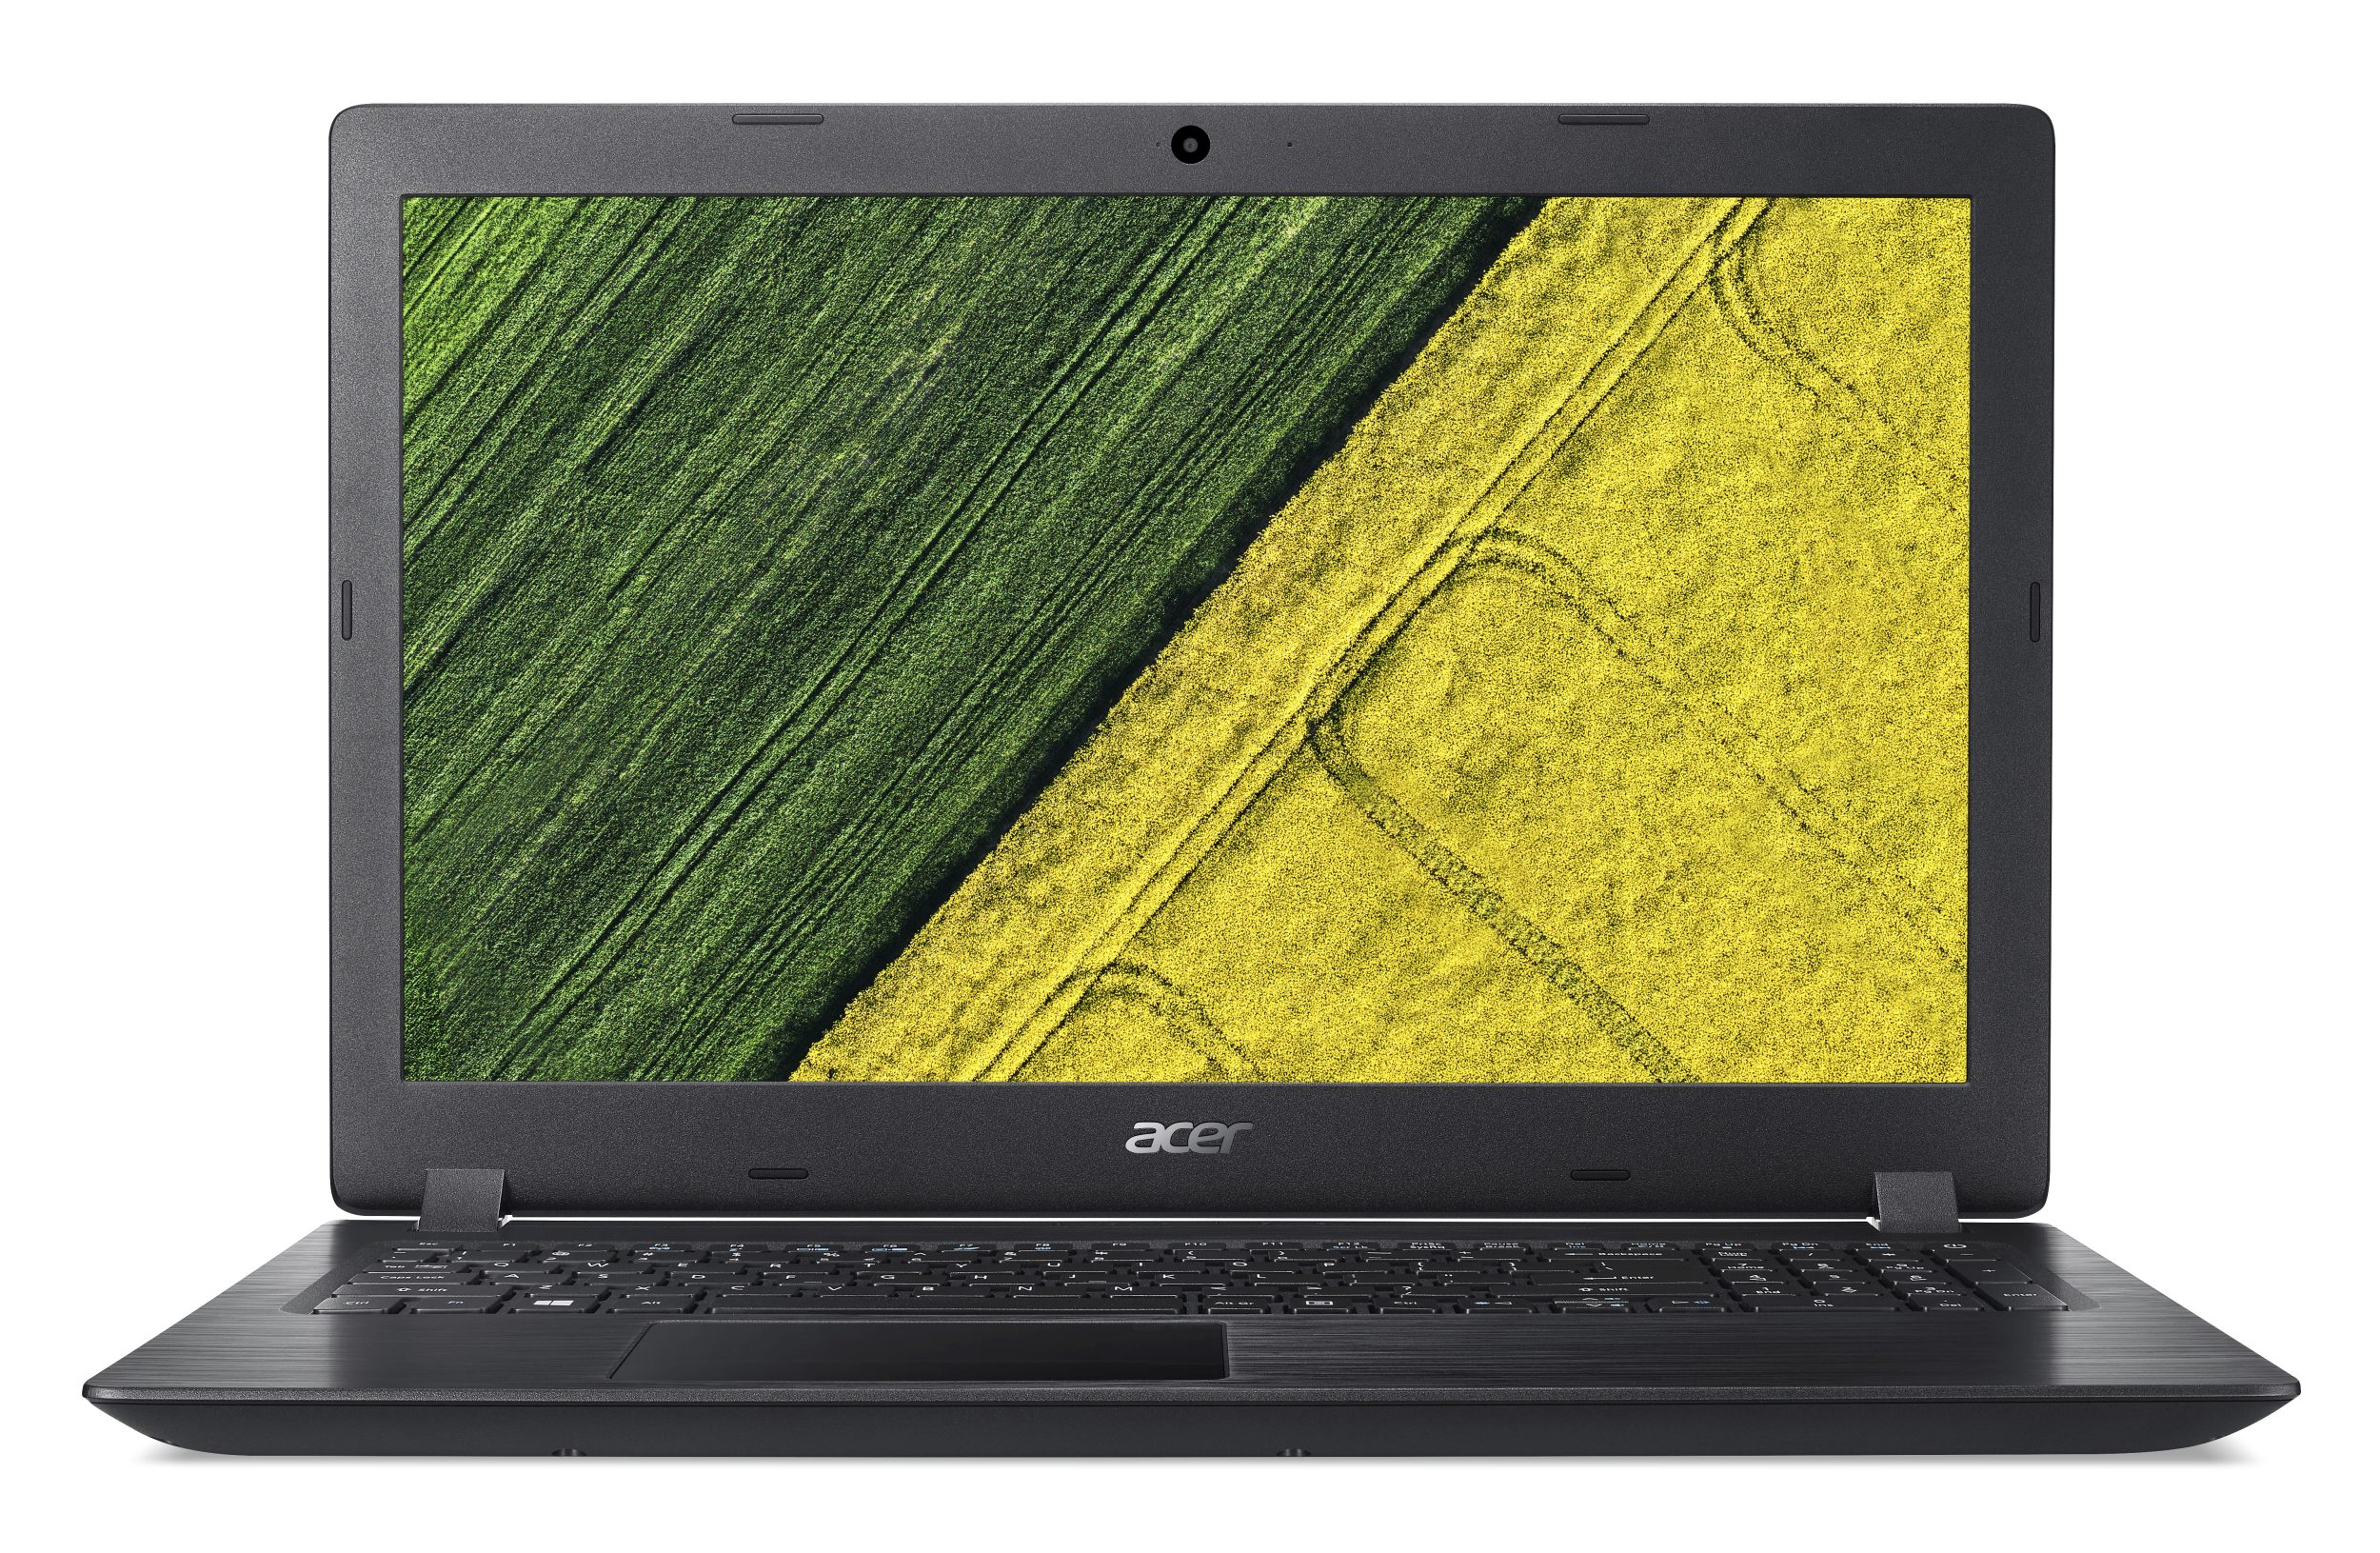 "Acer Aspire 3 (A315-41-R71G) AMD Ryzen 5 2500U/4GB/256GB+N (HDD)/Vega 8 Graphics/15.6"" LED matný/BT/W10 Home/Black"